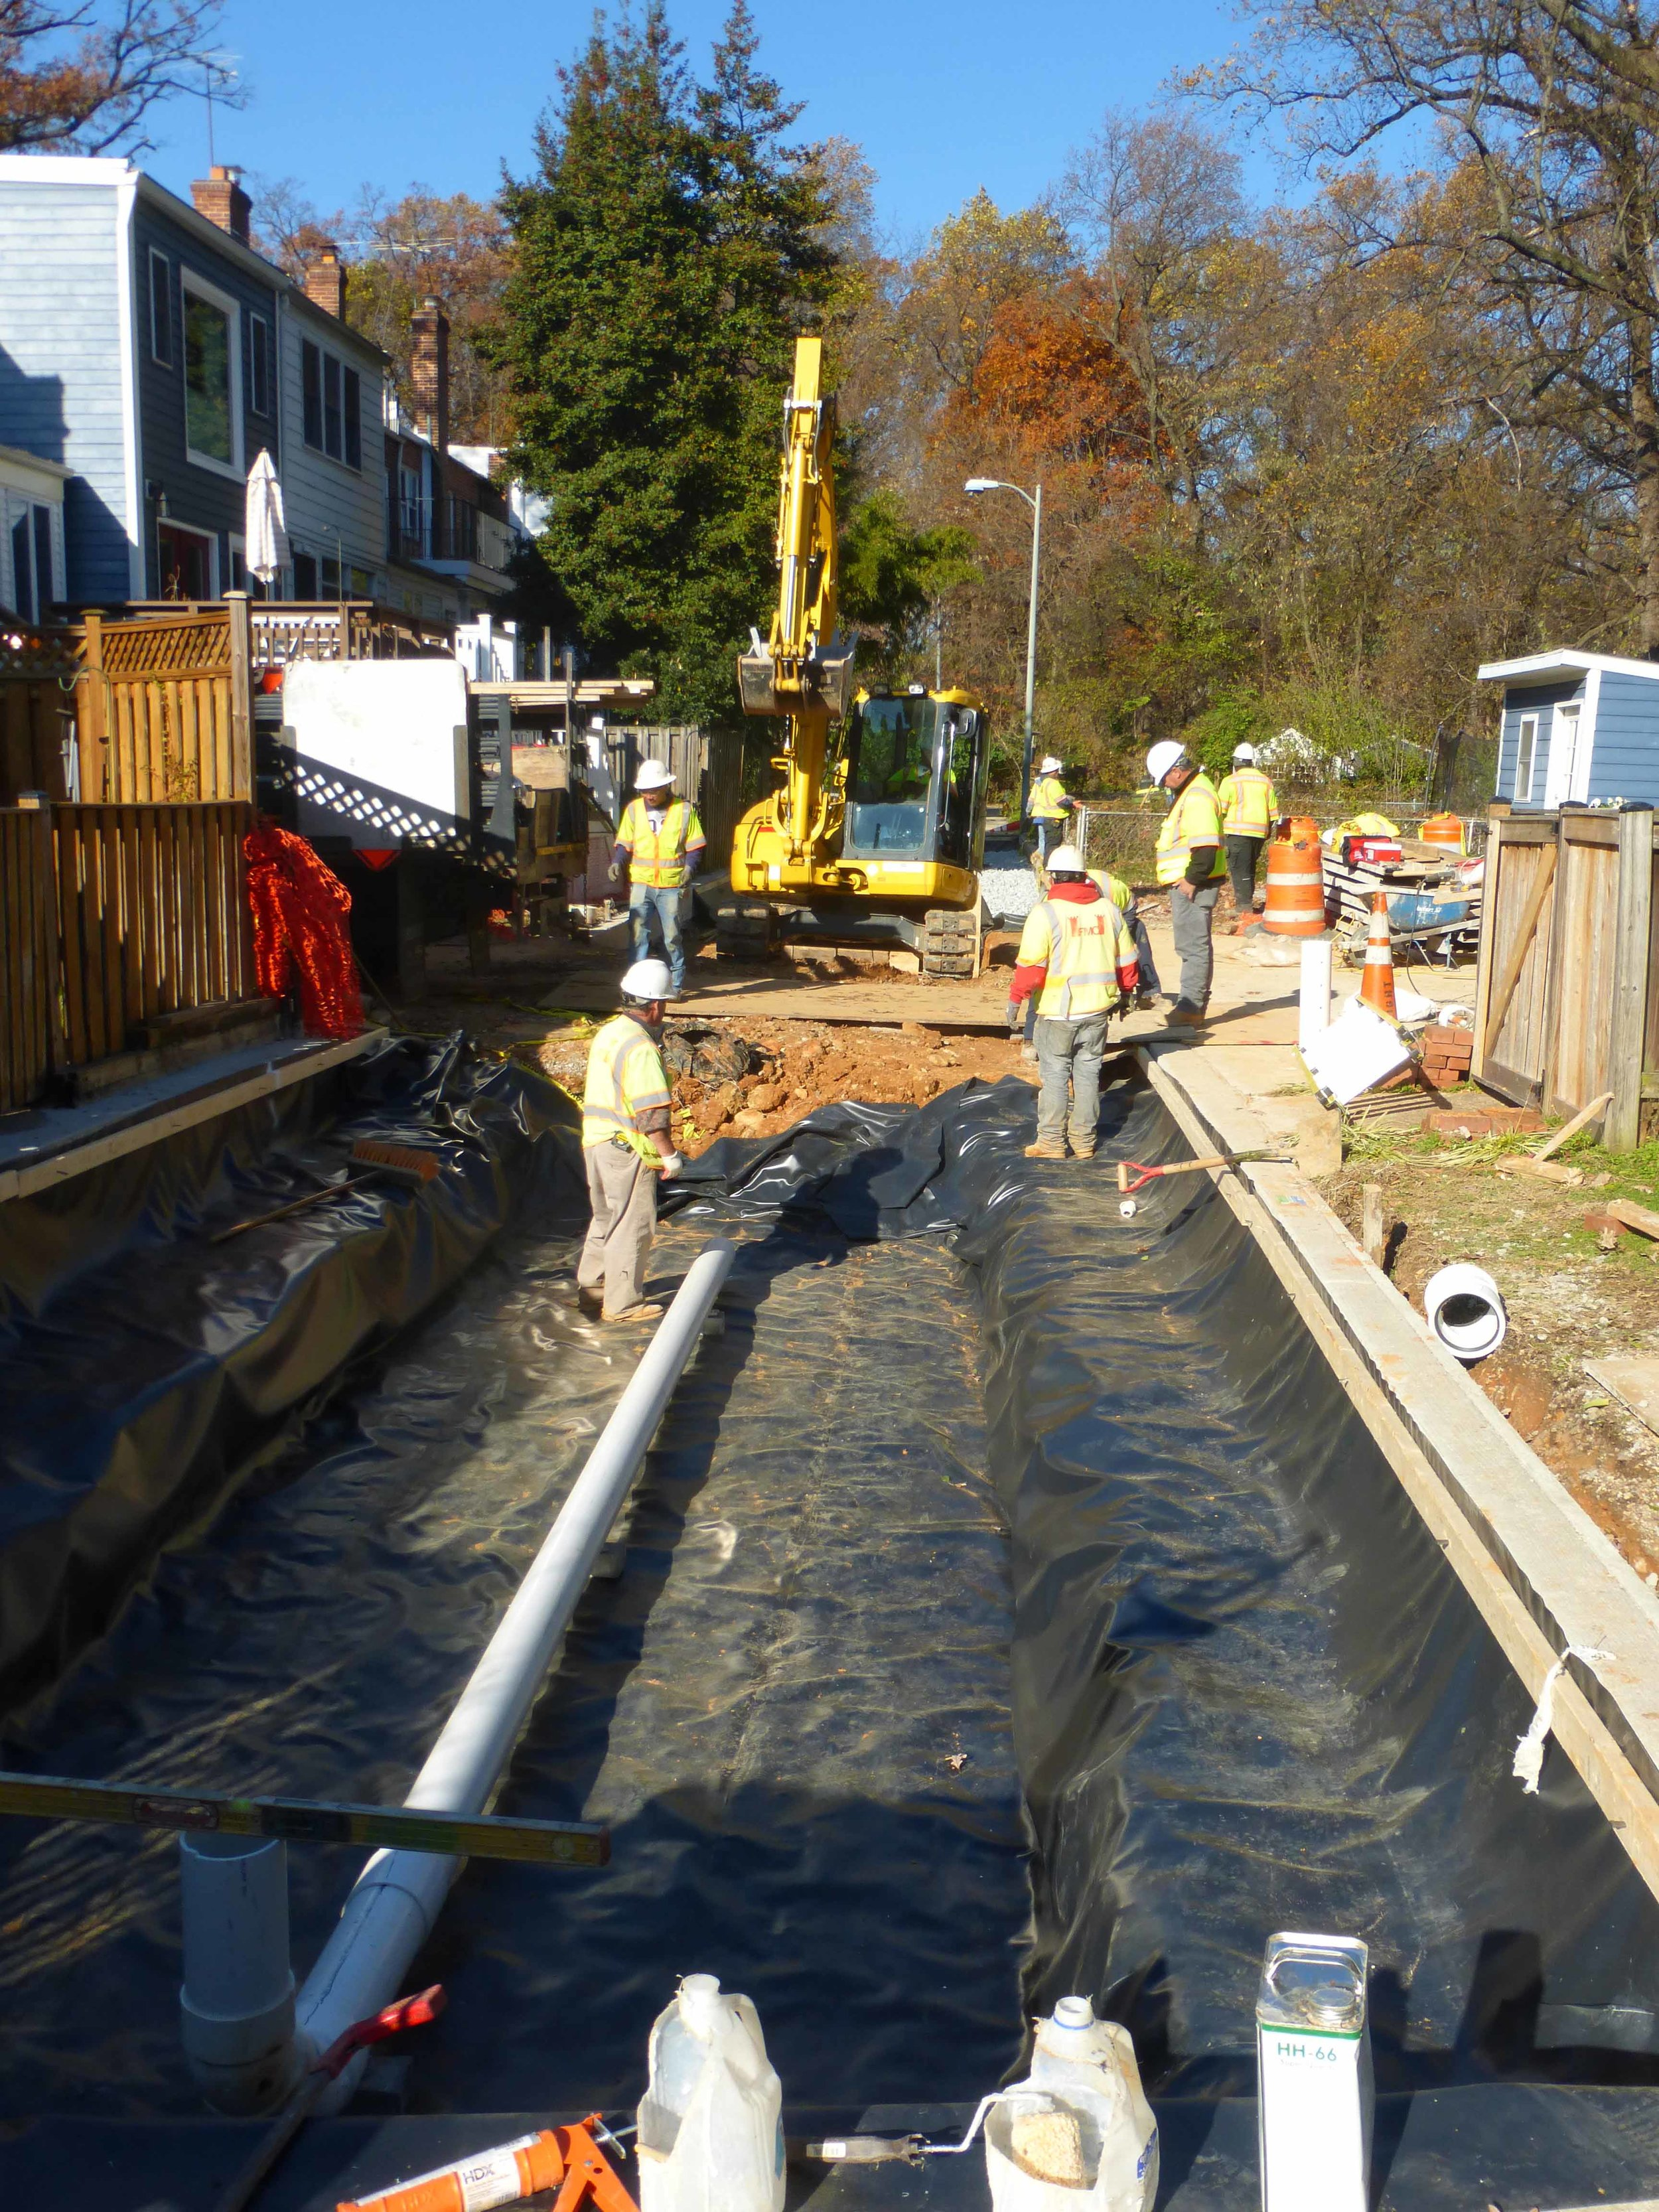 Sheets of waterproofing line the excavated alley to collect run off. Water travels through a perforated PVC pipe connected to the sewer system where it is slowly released back into the system after the rain storm has ended.